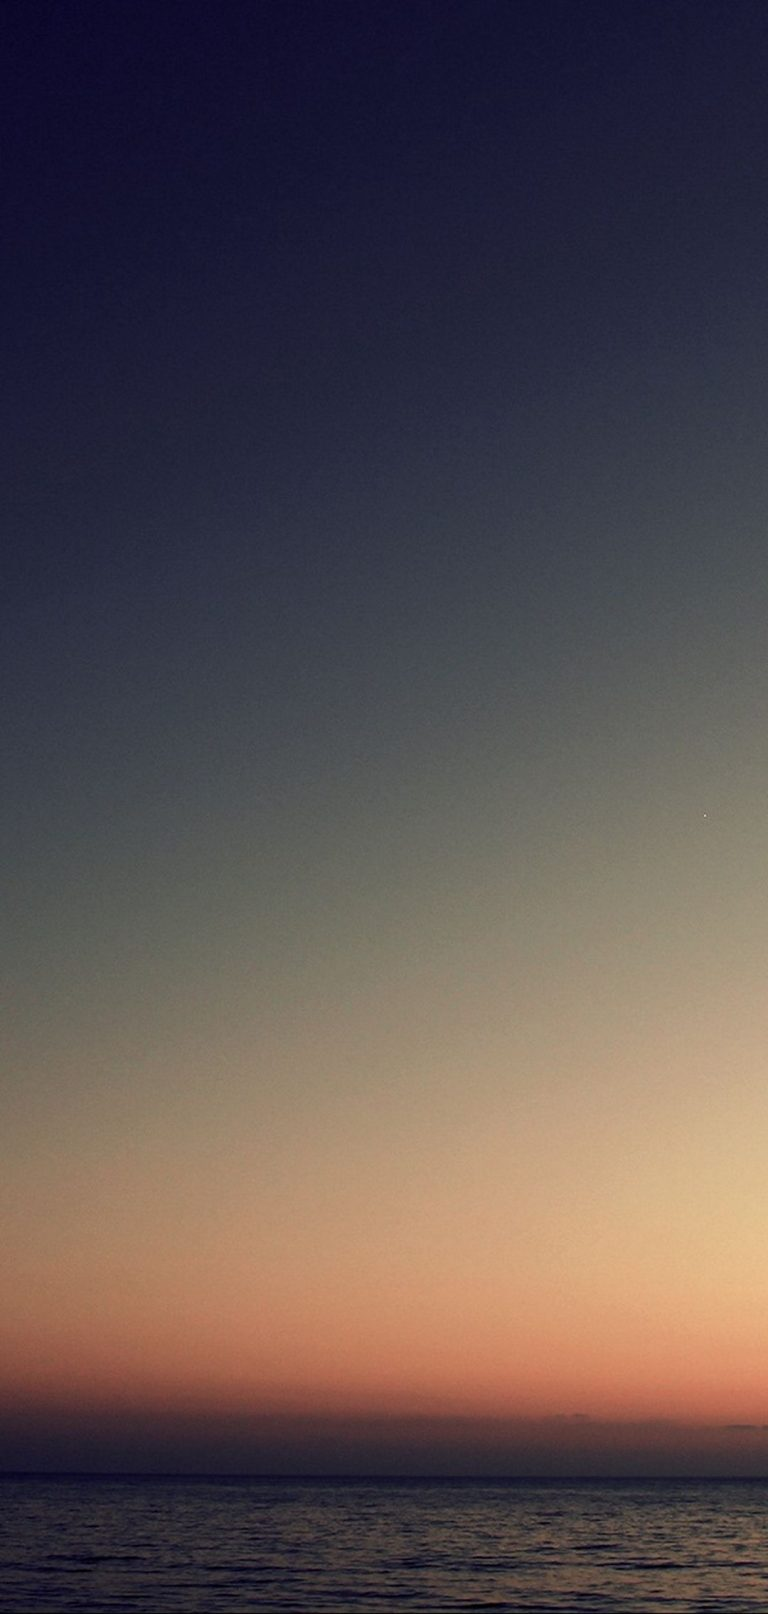 Sea Sky Sunset Skyline 1080x2270 768x1614